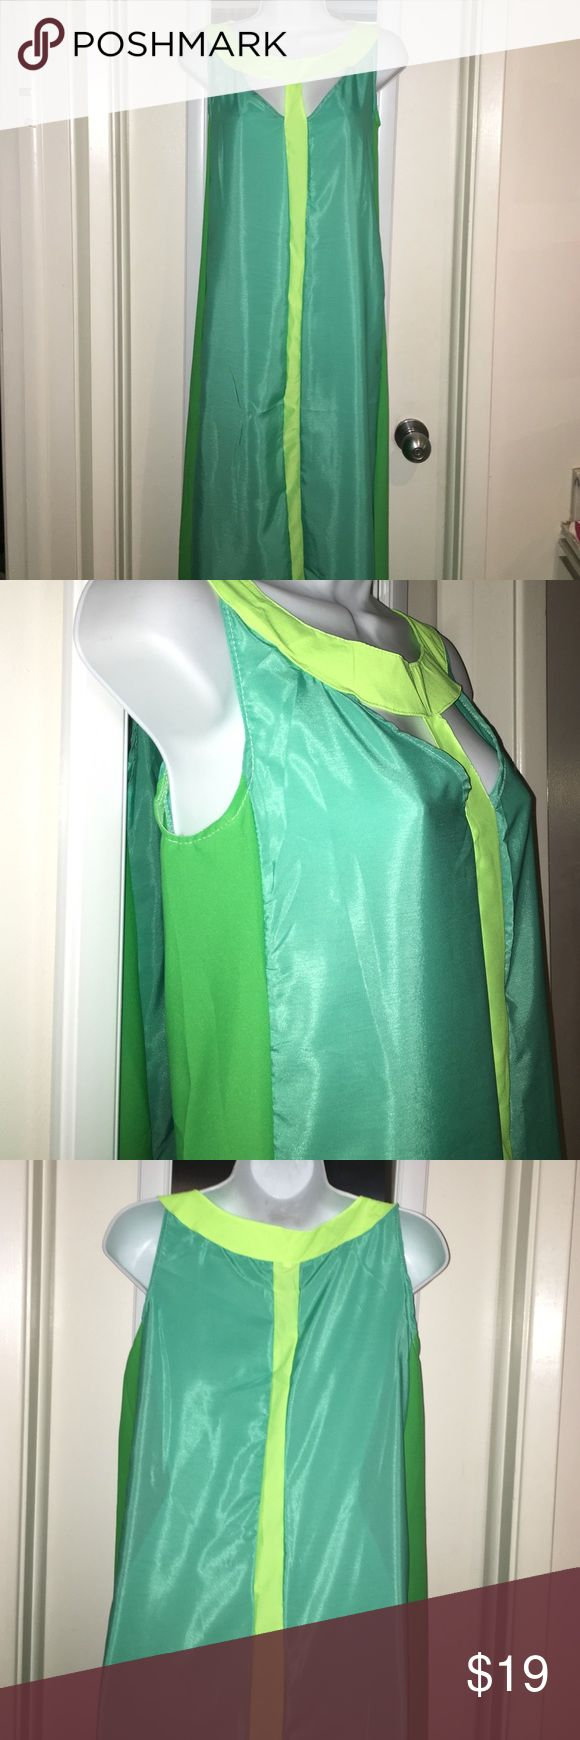 """New 3 colors maxi dress size S/M New maxi dress. 3 colors neon,green and teal. From shoulder to hem 57"""". No tags but fits good on a S/M. Poly material. No stains,rips or imperfections. Please ask all the necessary questions before purchasing to make sure and clear this is what you want. Thank you for visiting. Your purchases are my blessings. Have a great Poshing shopping ❤️💜💚 no brand Dresses Maxi"""